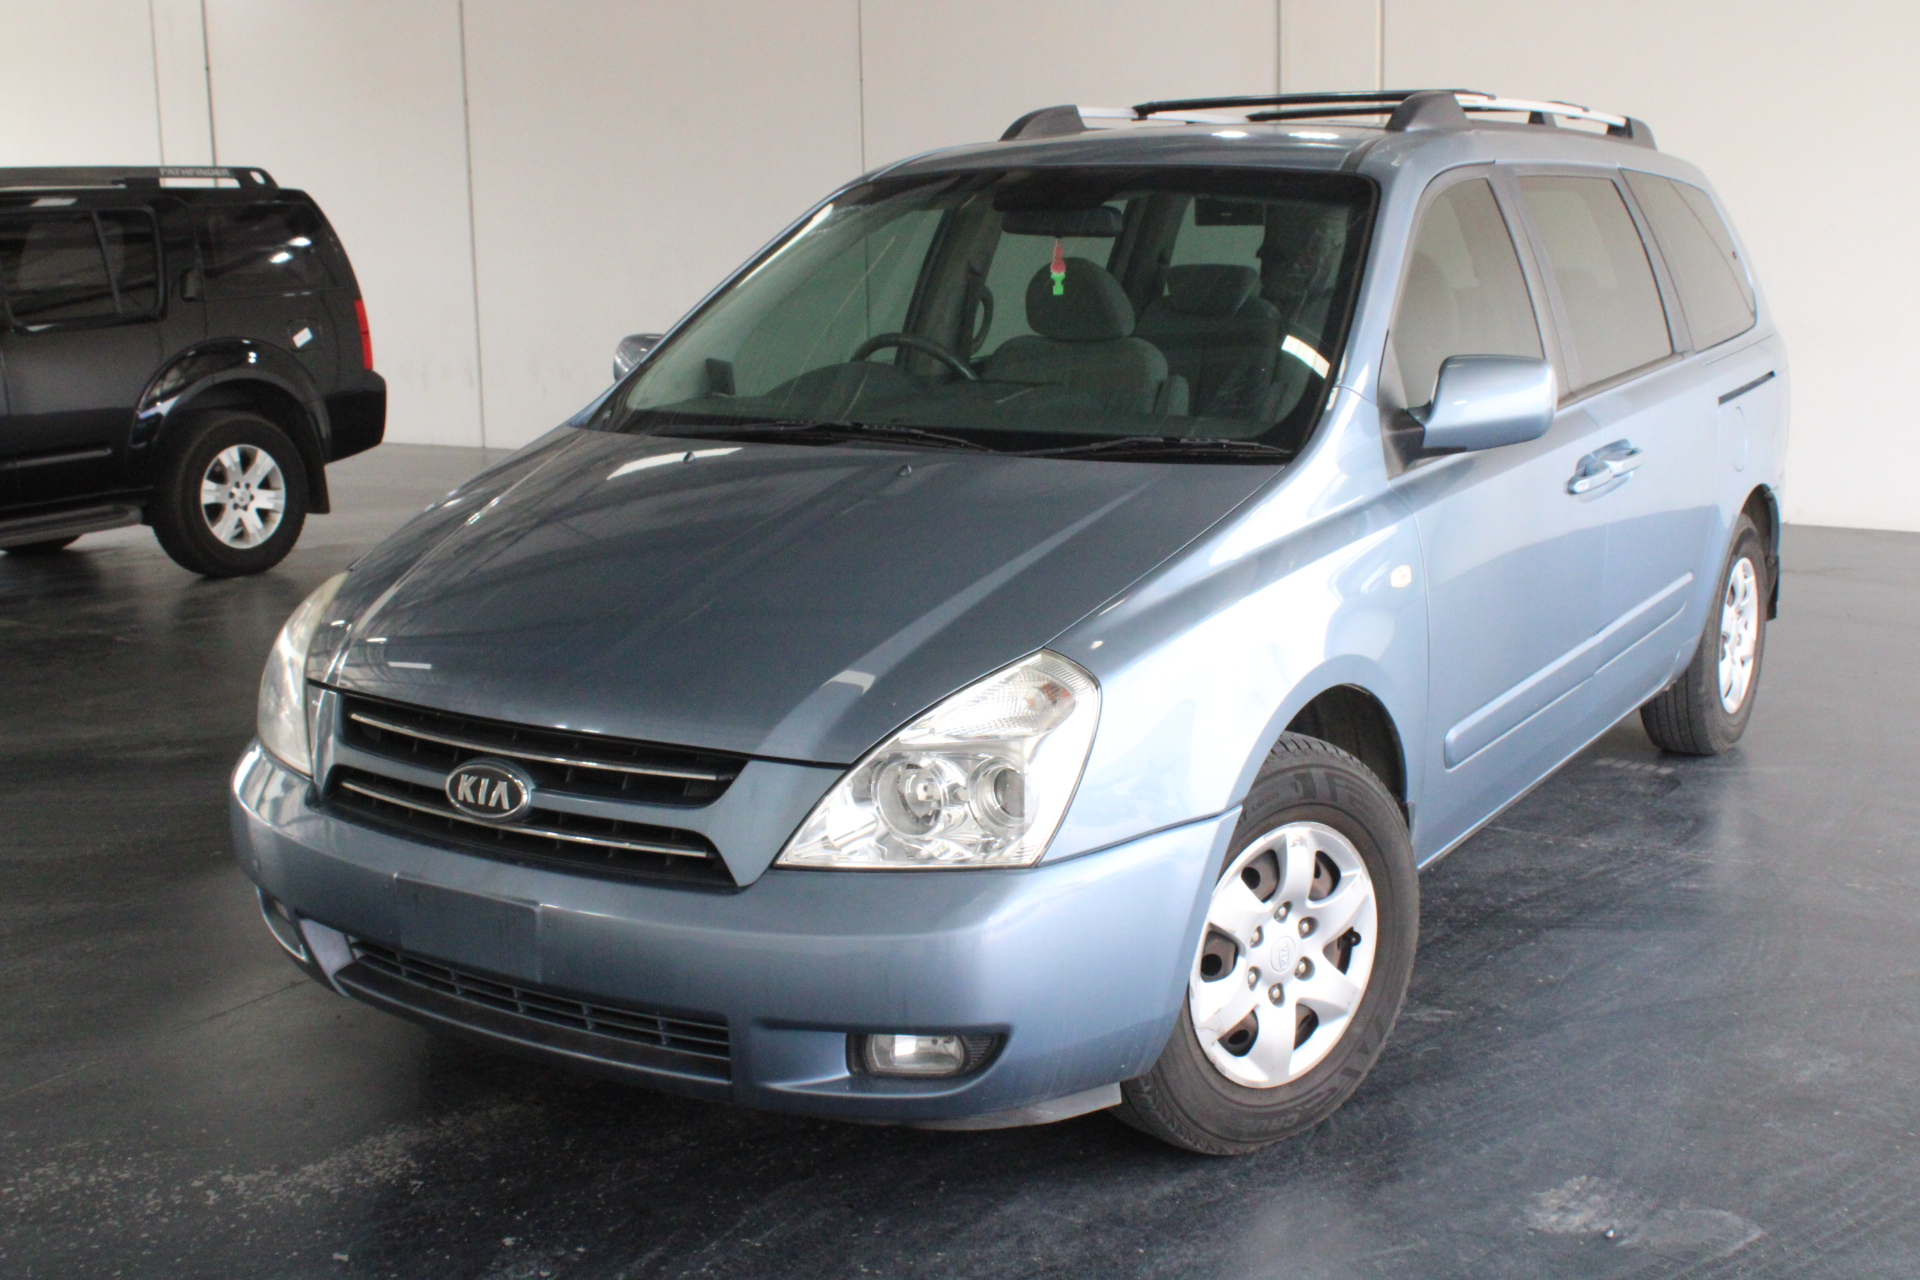 2006 Kia Grand Carnival (EX) VQ Automatic 8 Seats People Mover